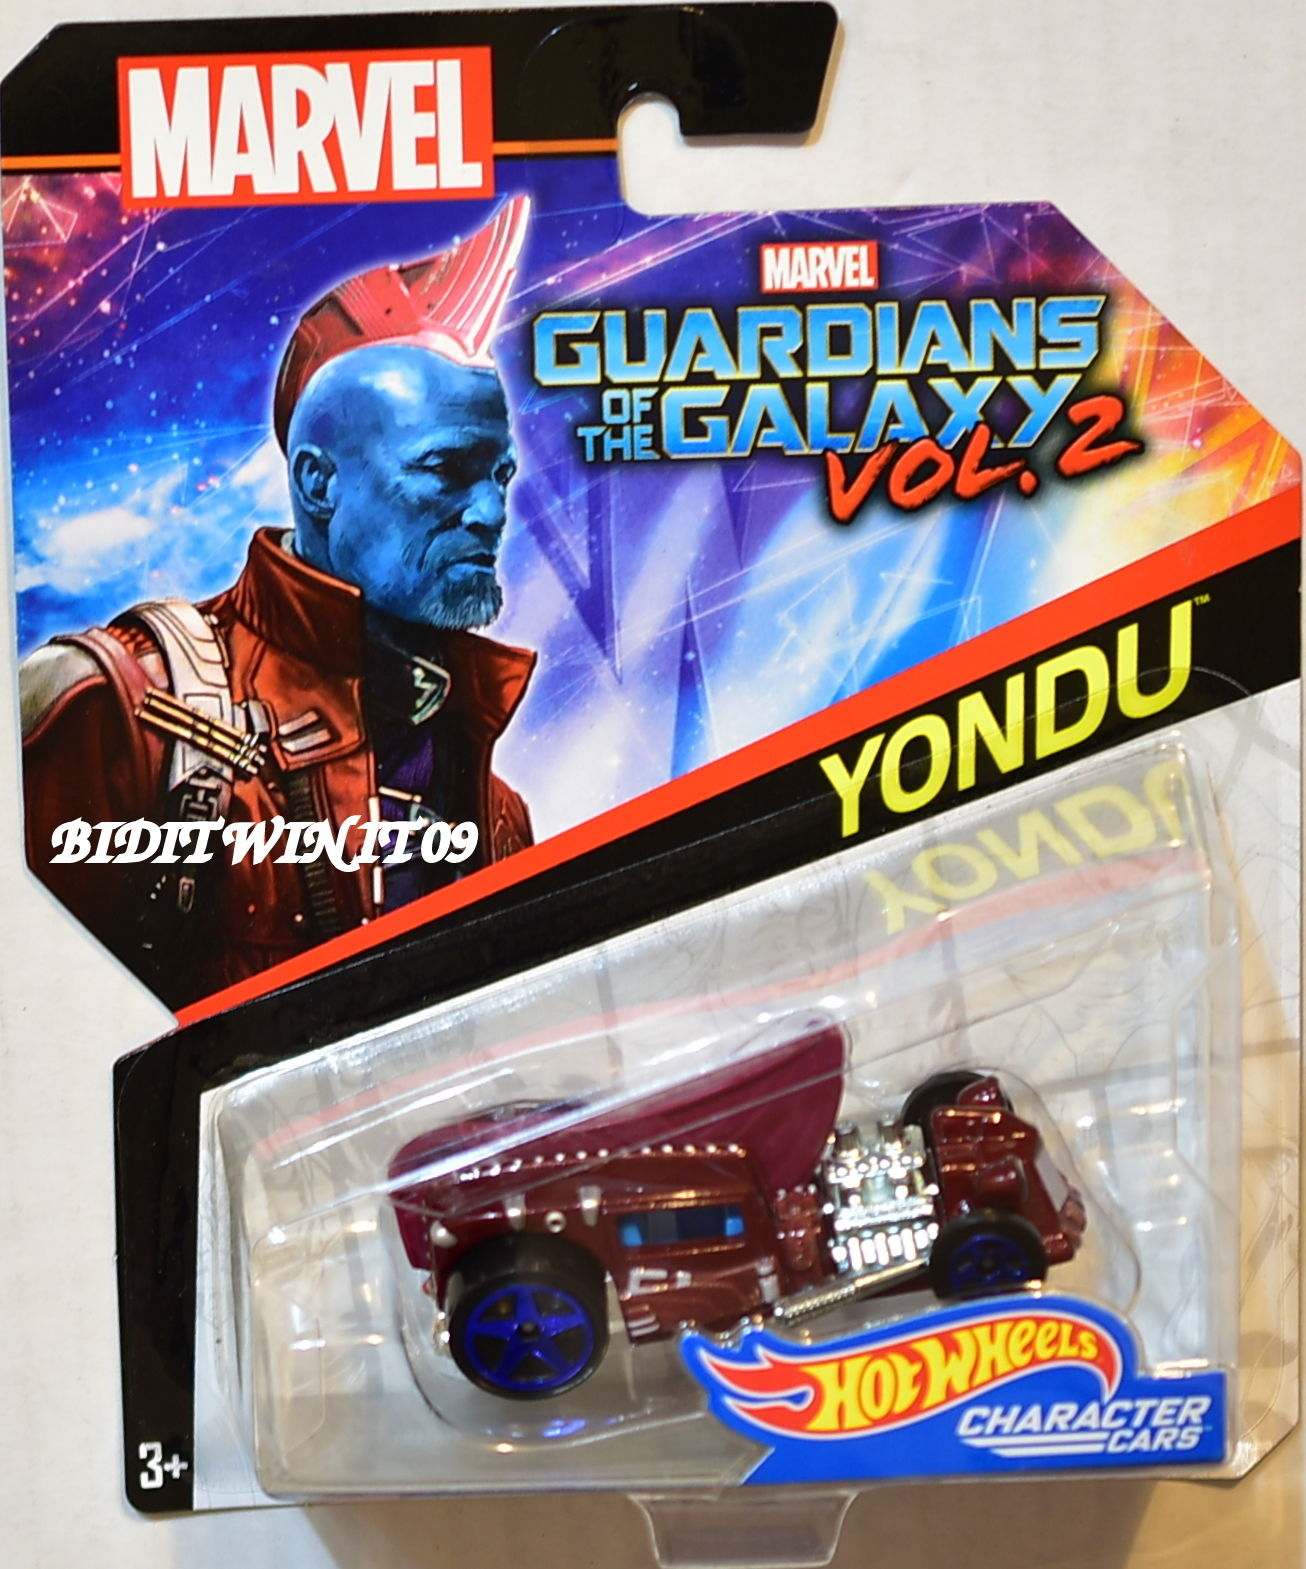 HOT WHEELS MARVEL GUARDIANS OF THE GALAXY YONDU